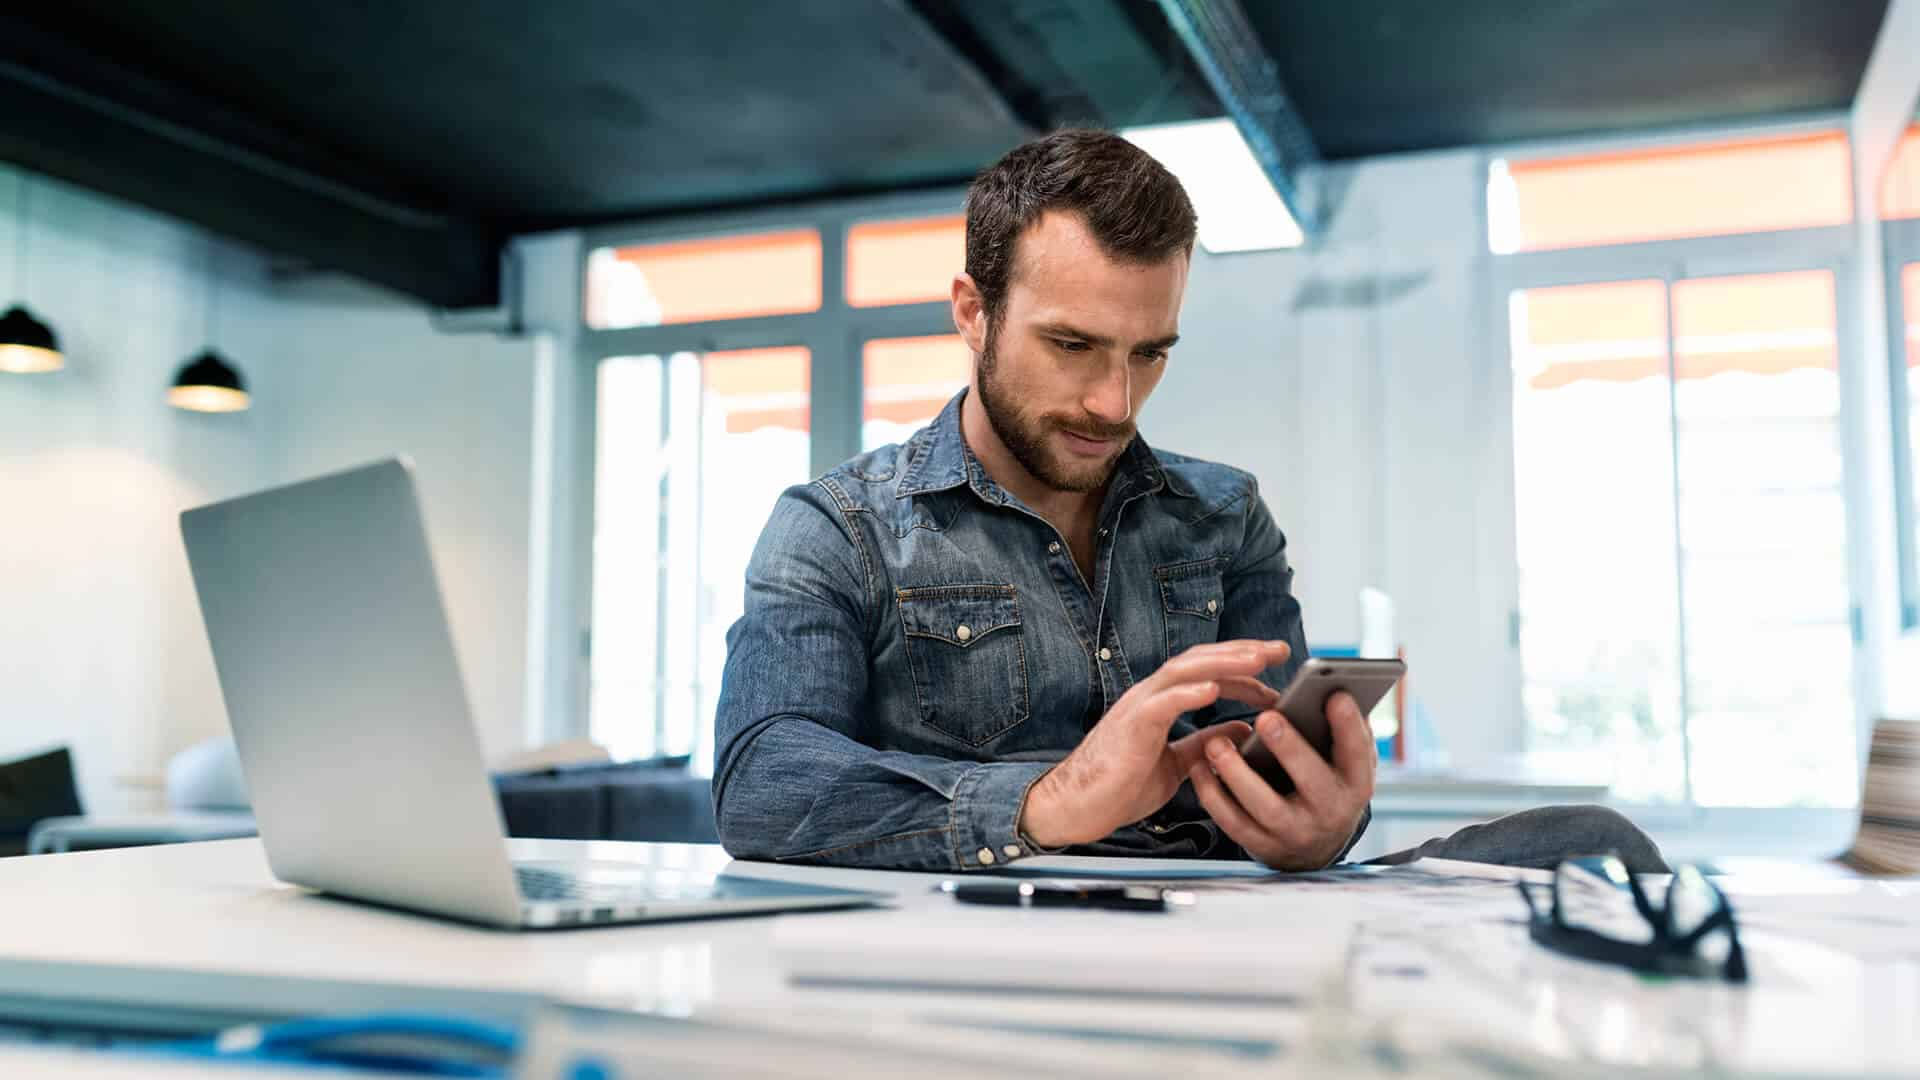 Modernize Your Company With Business Texting Services